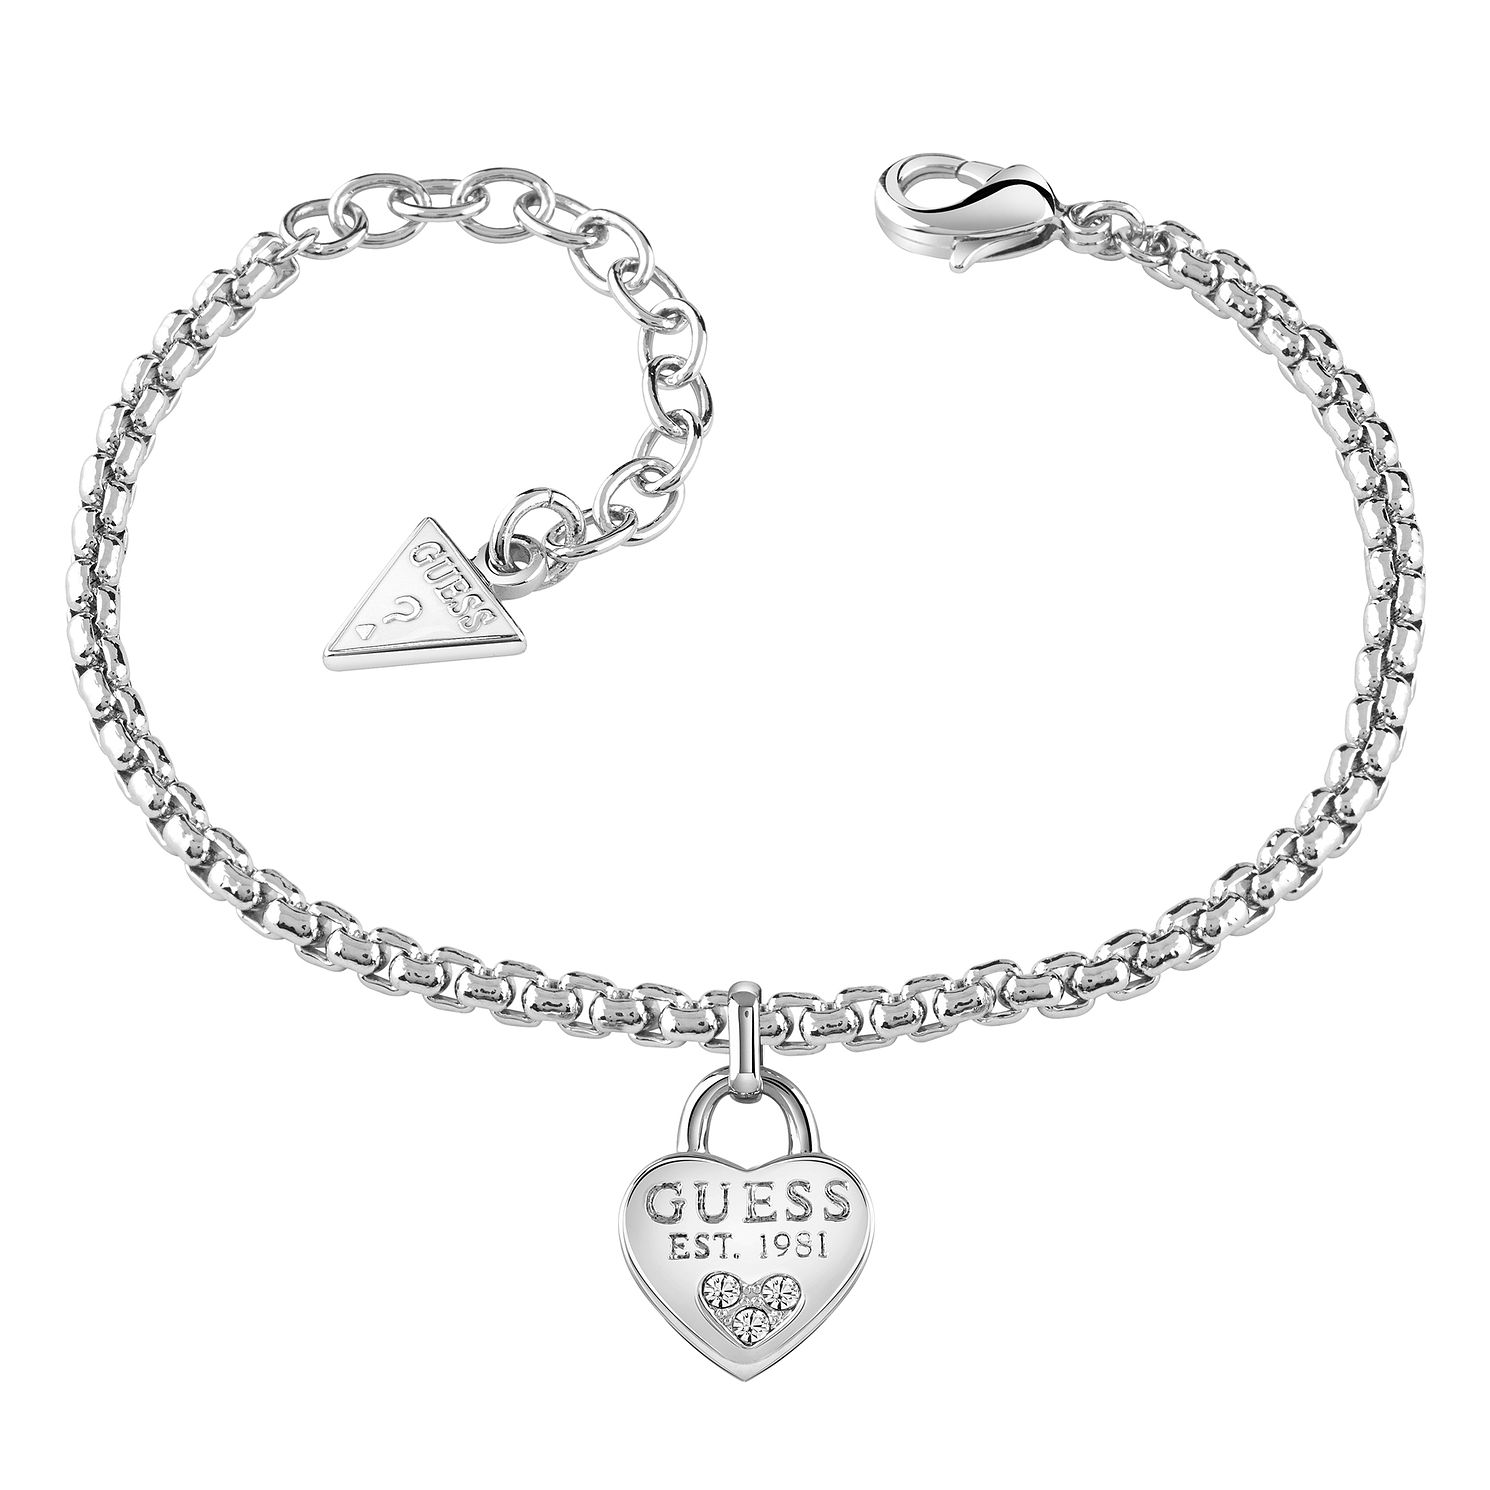 Guess Rhodium-Plated Swarovski Crystal Heart Bracelet - Product number 5121191